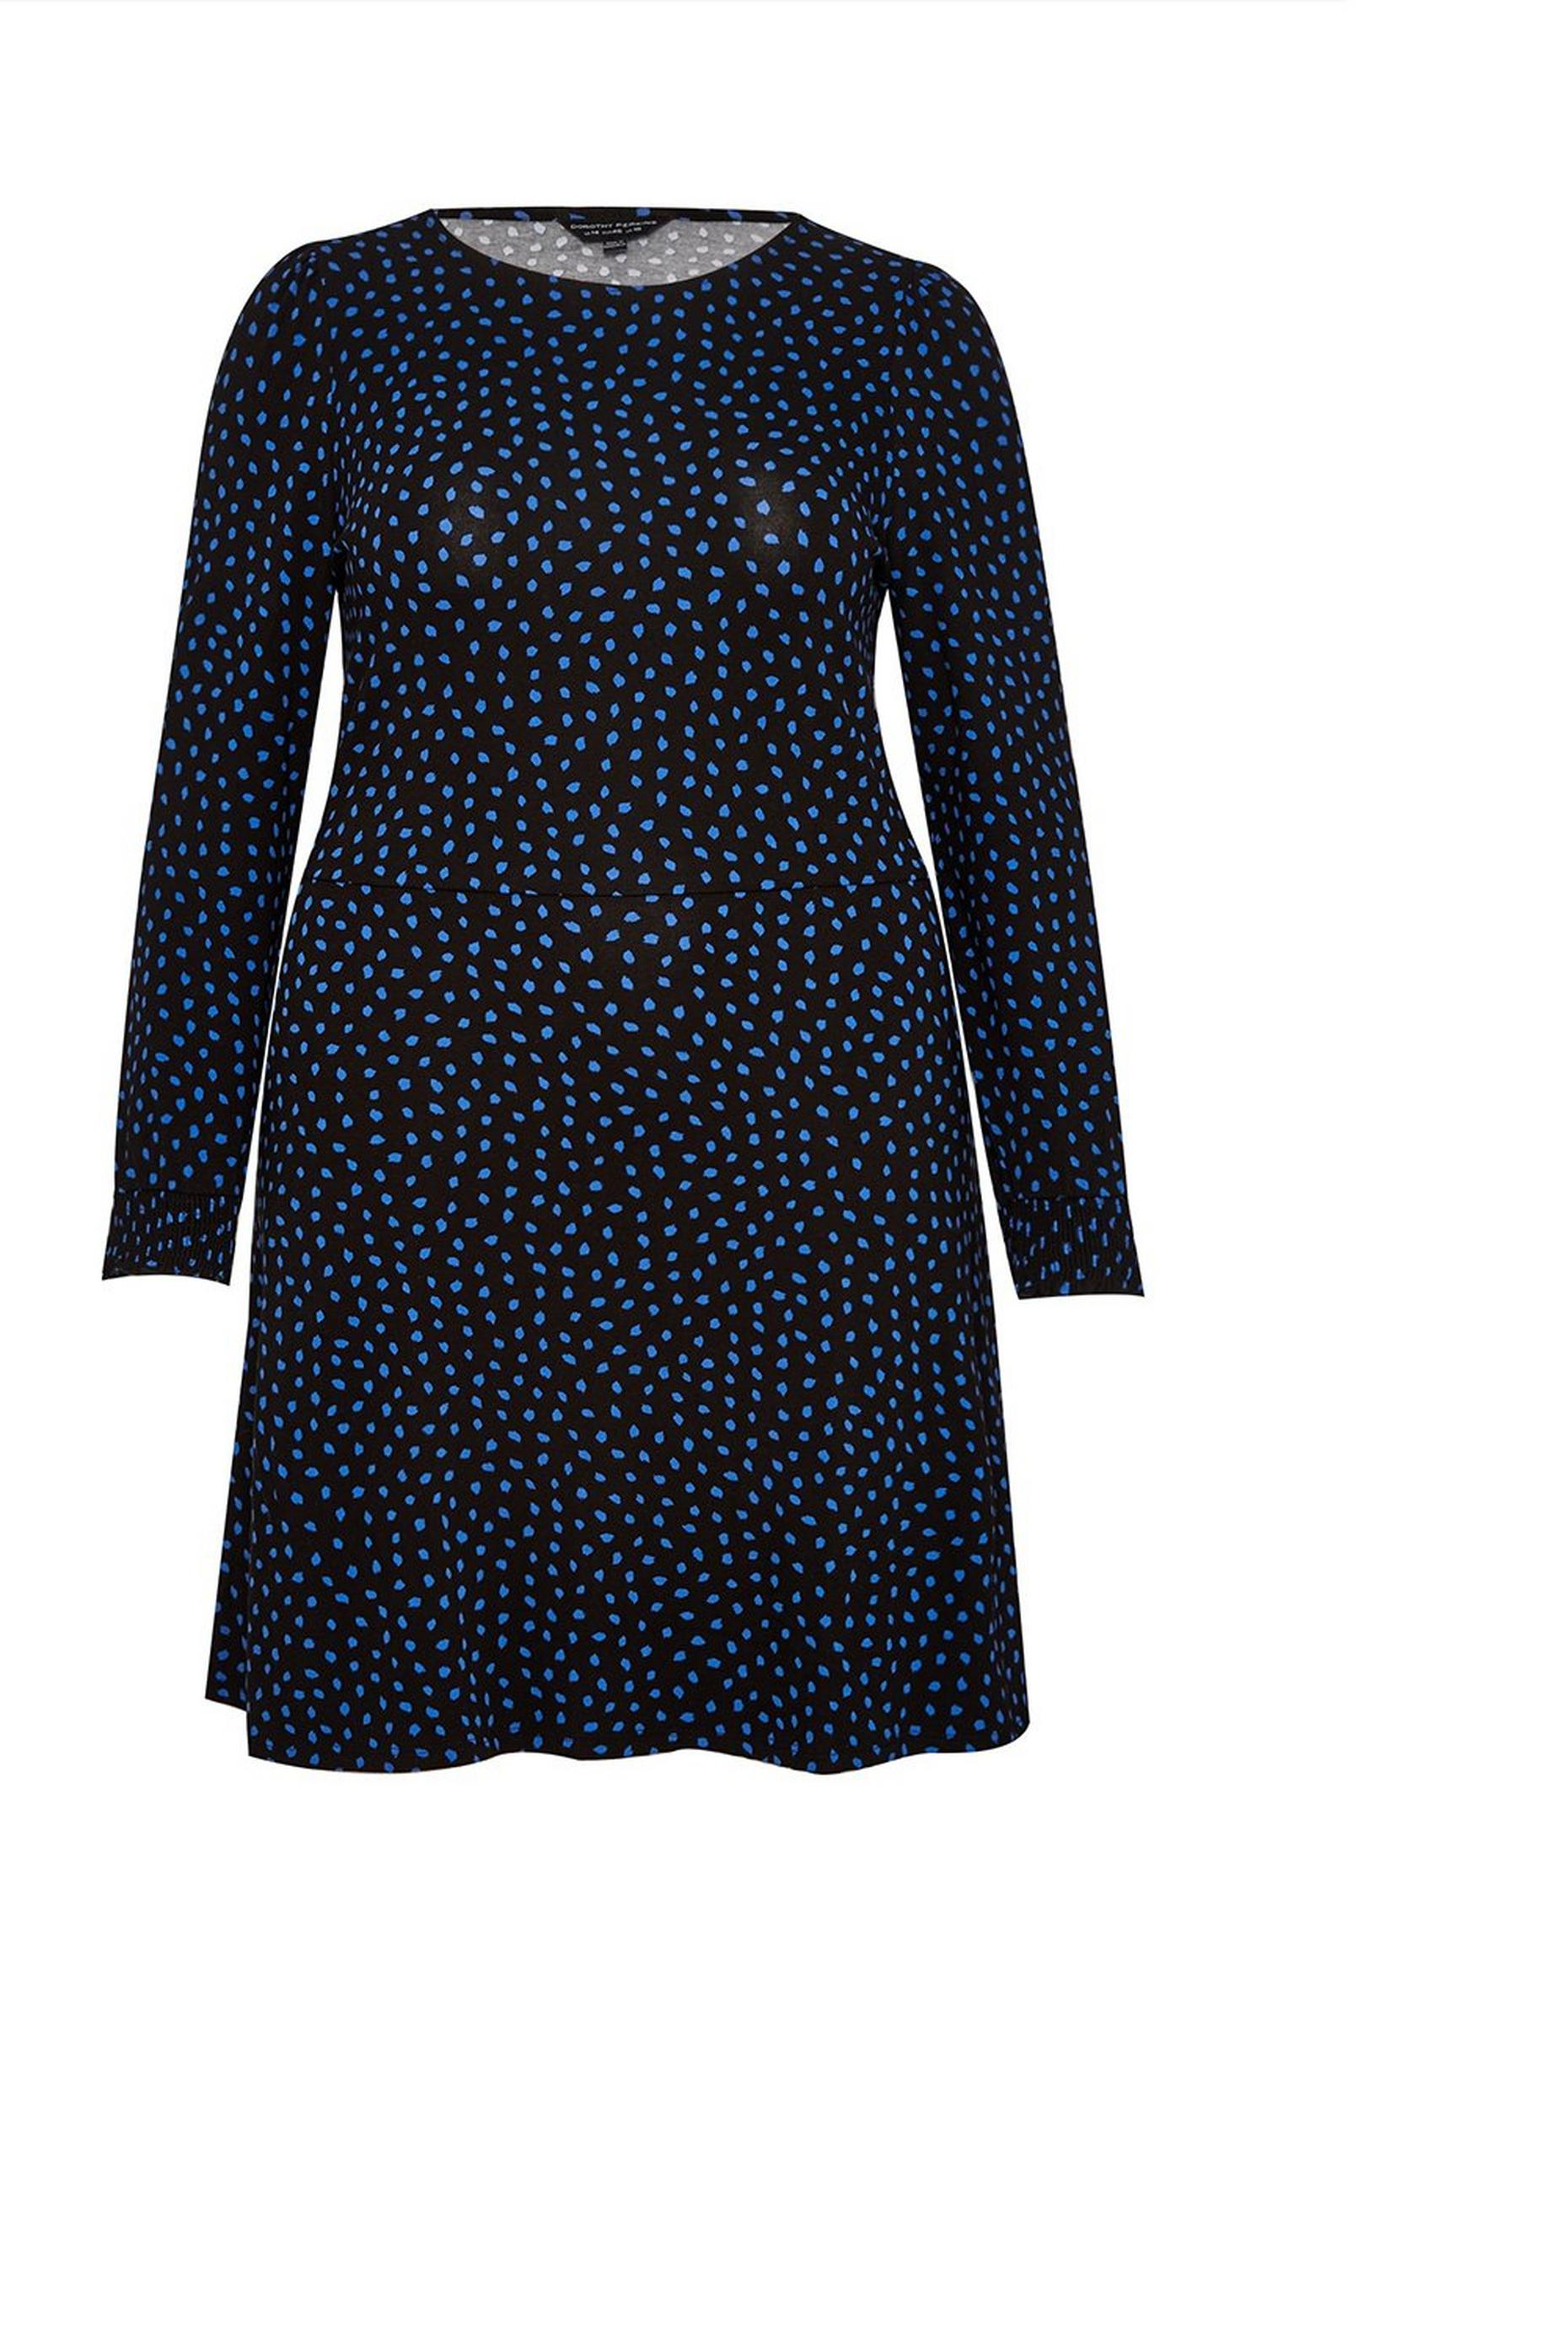 Curve Navy Spot Dress